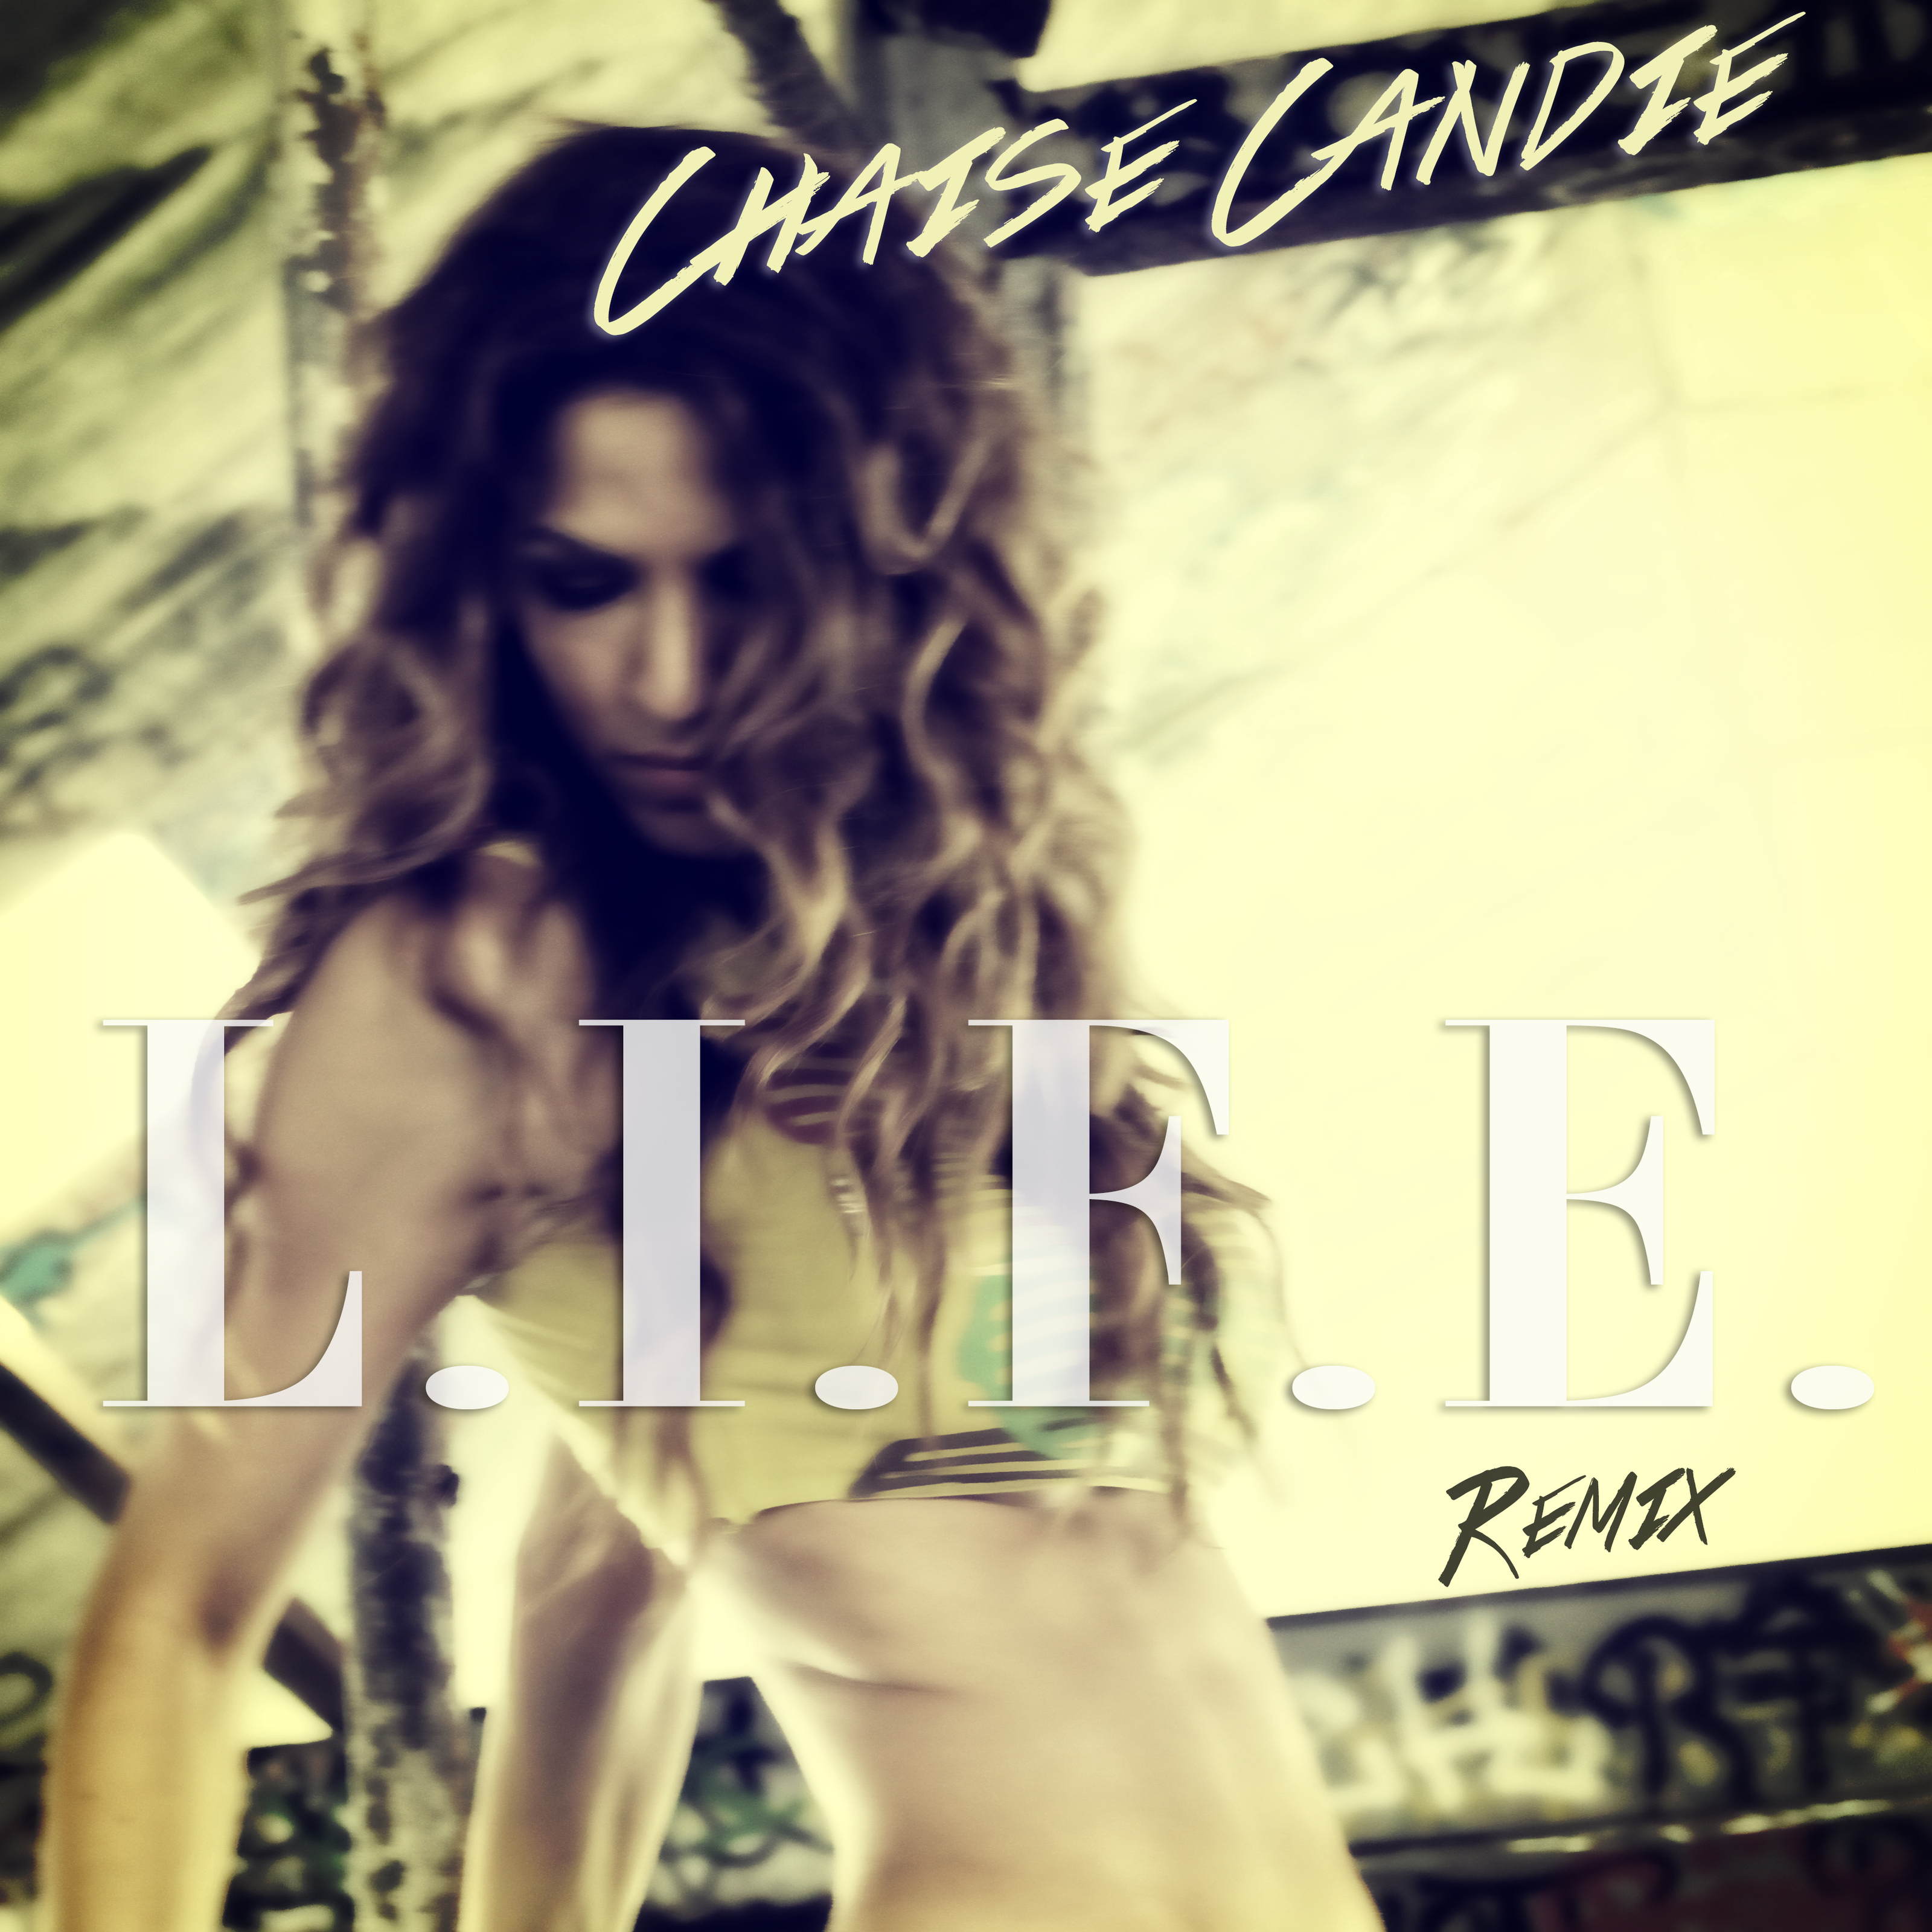 Chaise candie reverbnation for Chaise candie life